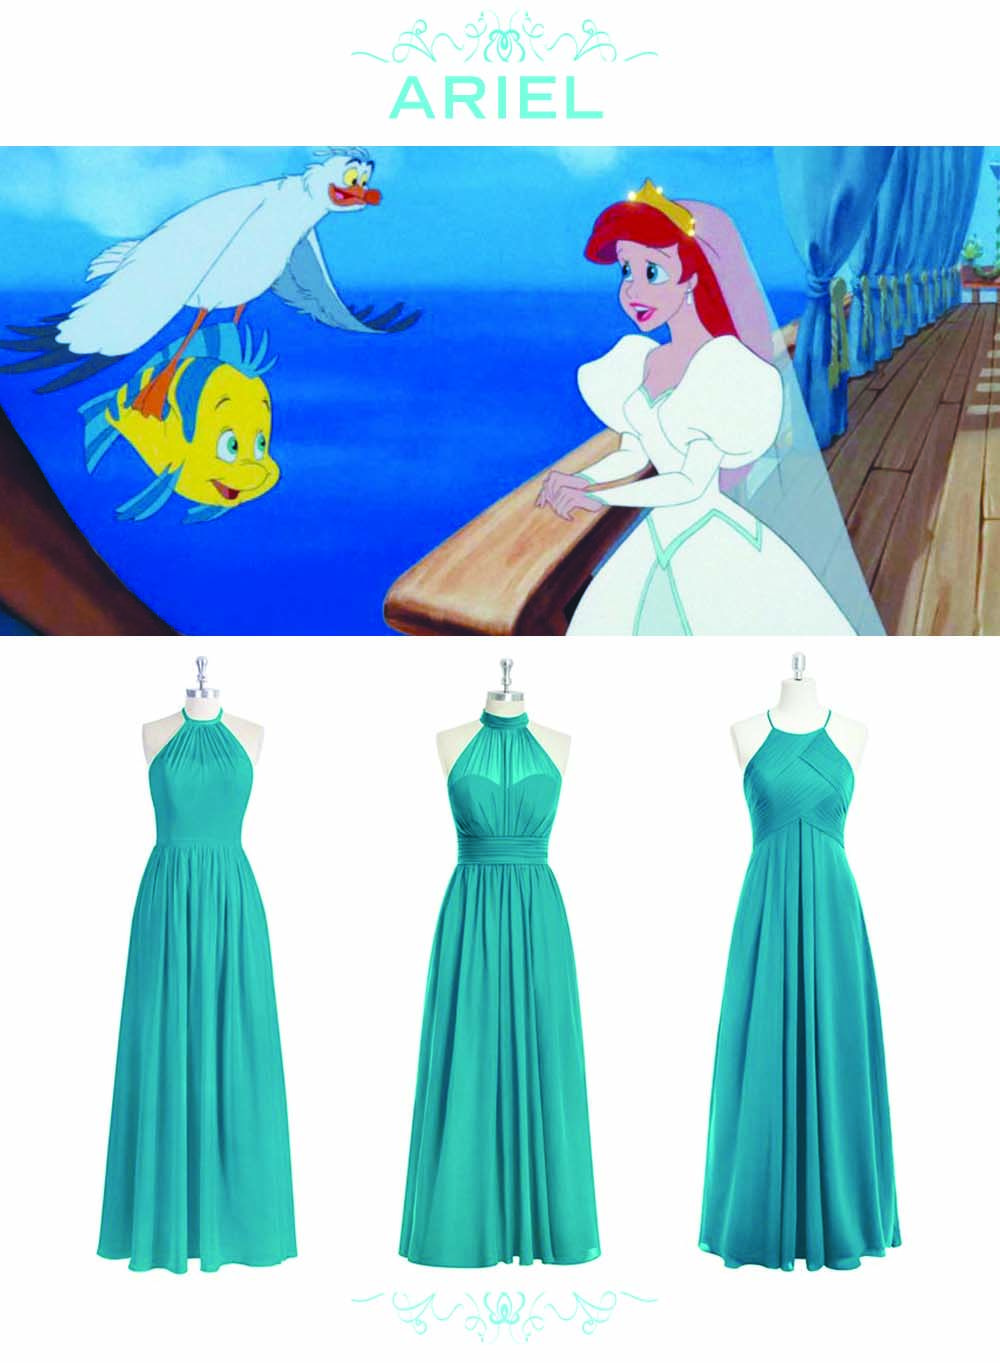 b6d2b9d1cd7 6 Bridesmaid Sets Inspired By Disney Weddings